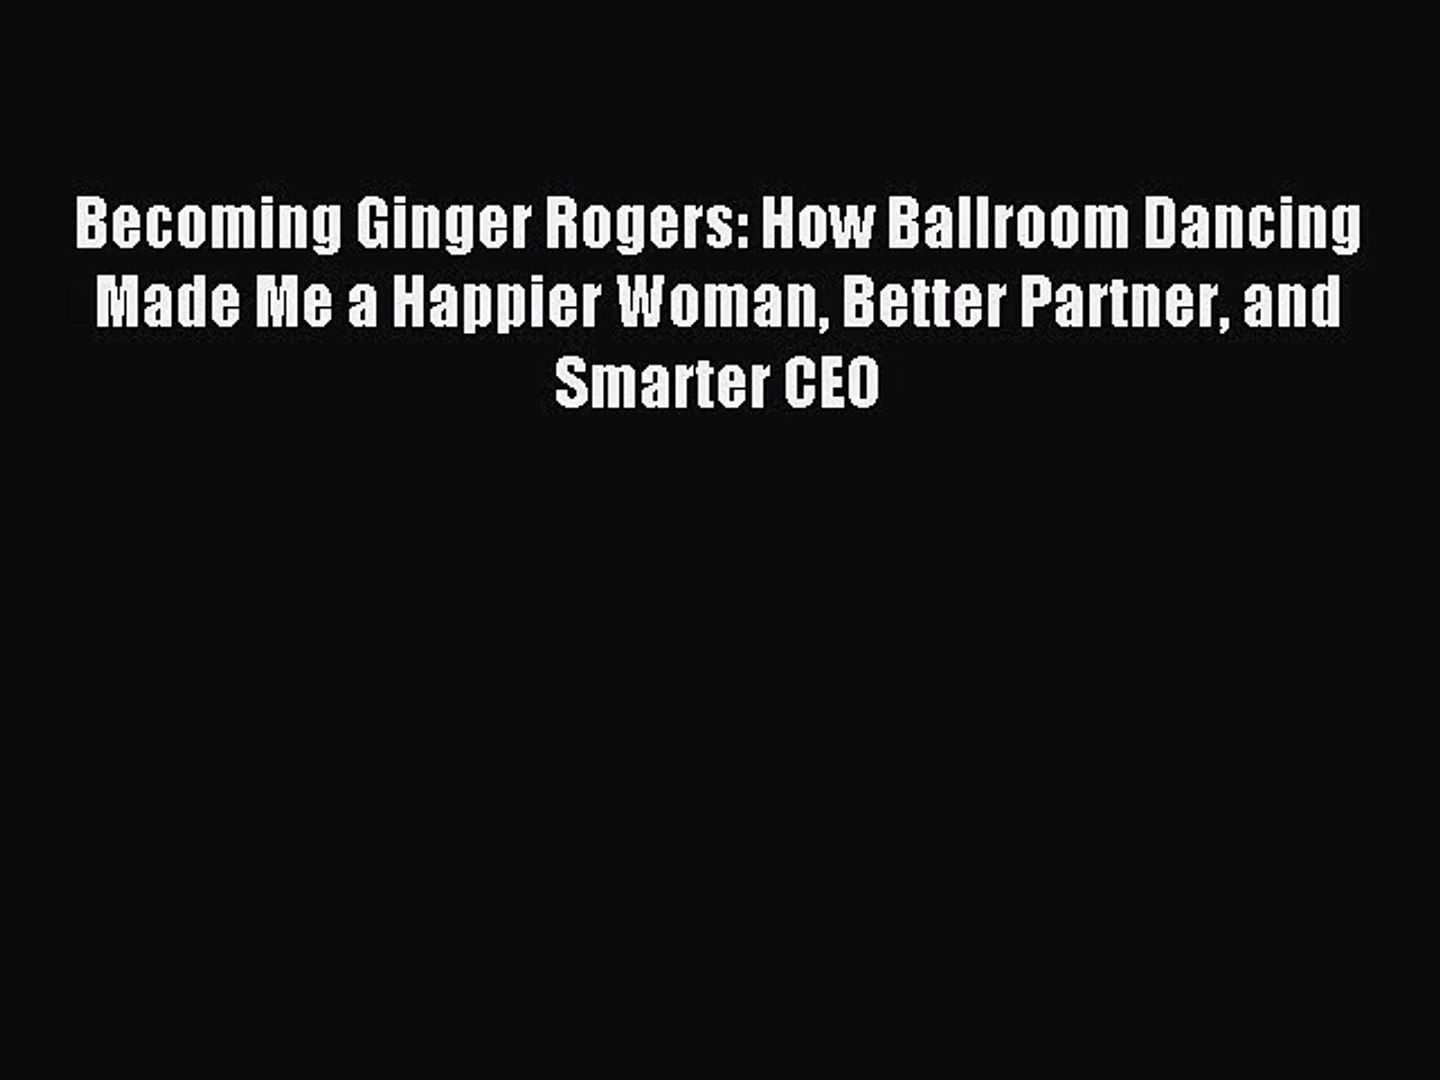 Read Becoming Ginger Rogers: How Ballroom Dancing Made Me a Happier Woman Better Partner and